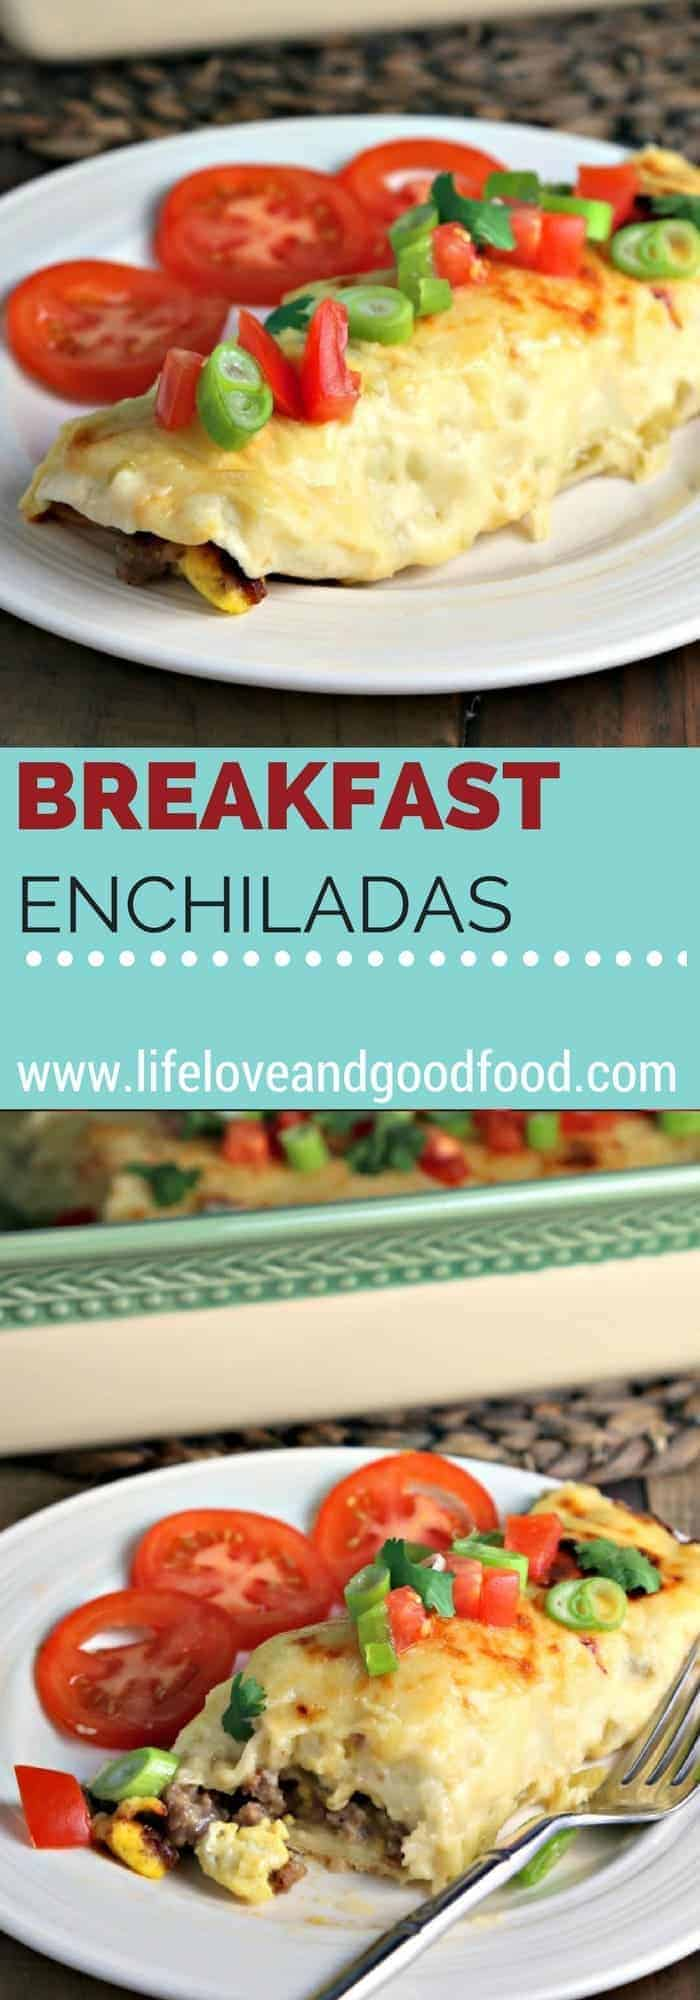 A plate of food on a table, with breakfast enchiladas